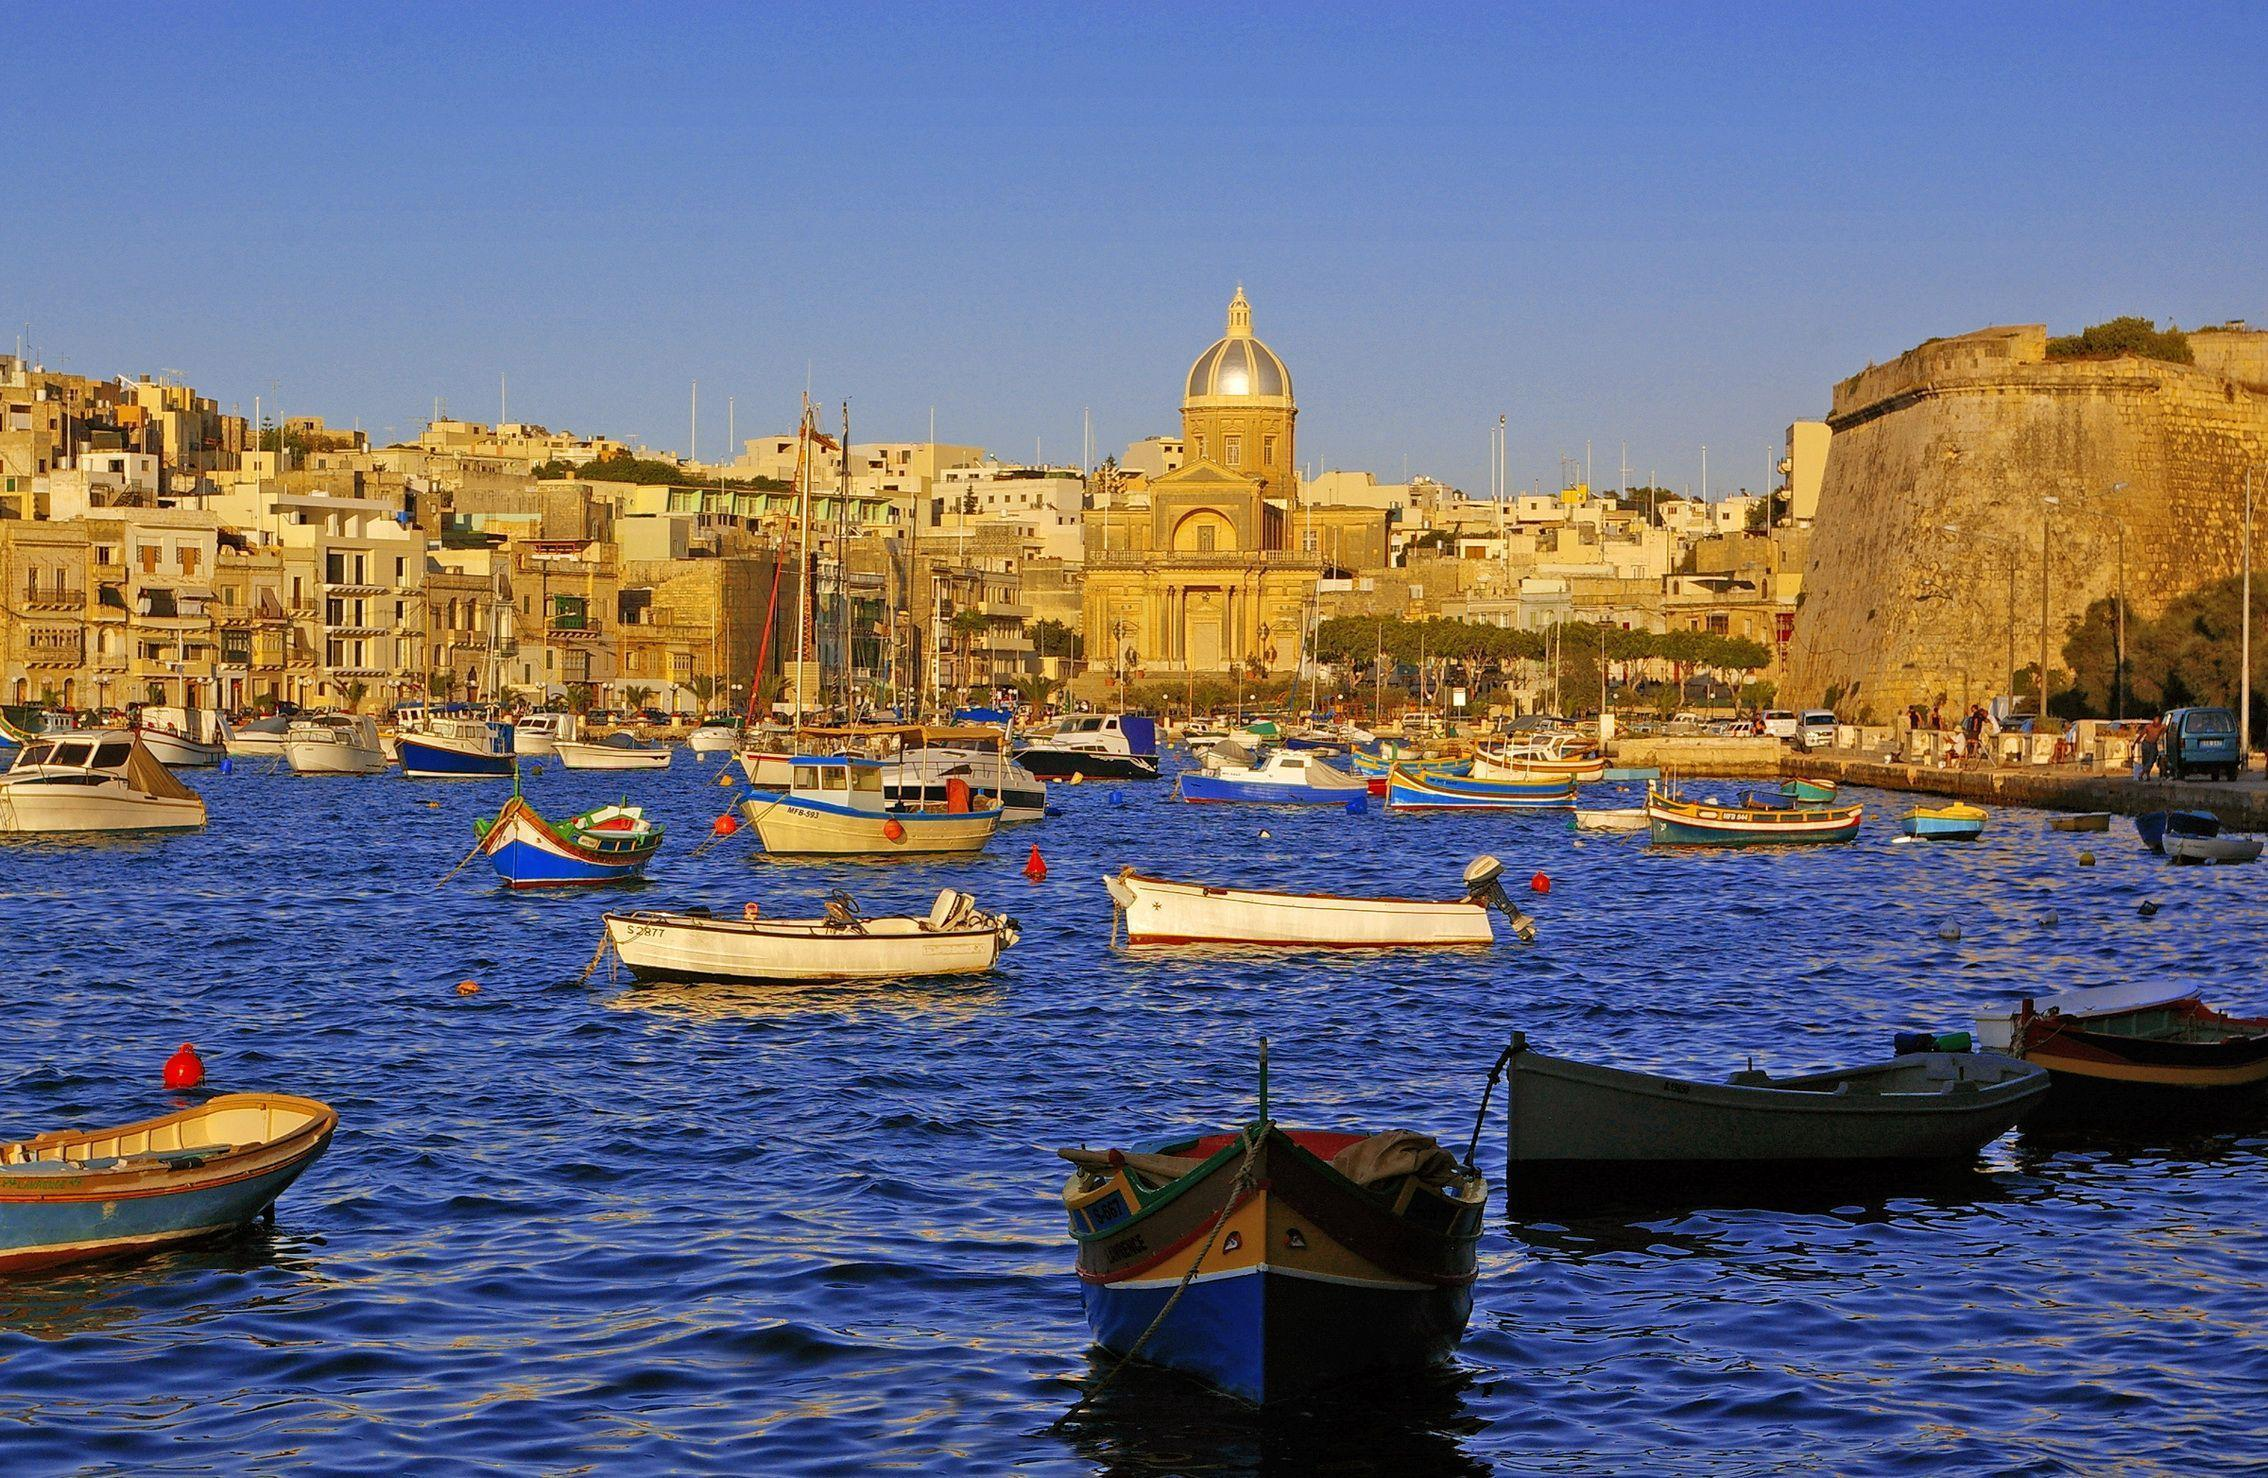 Malta Kalkara Boats Cities 2268x1478